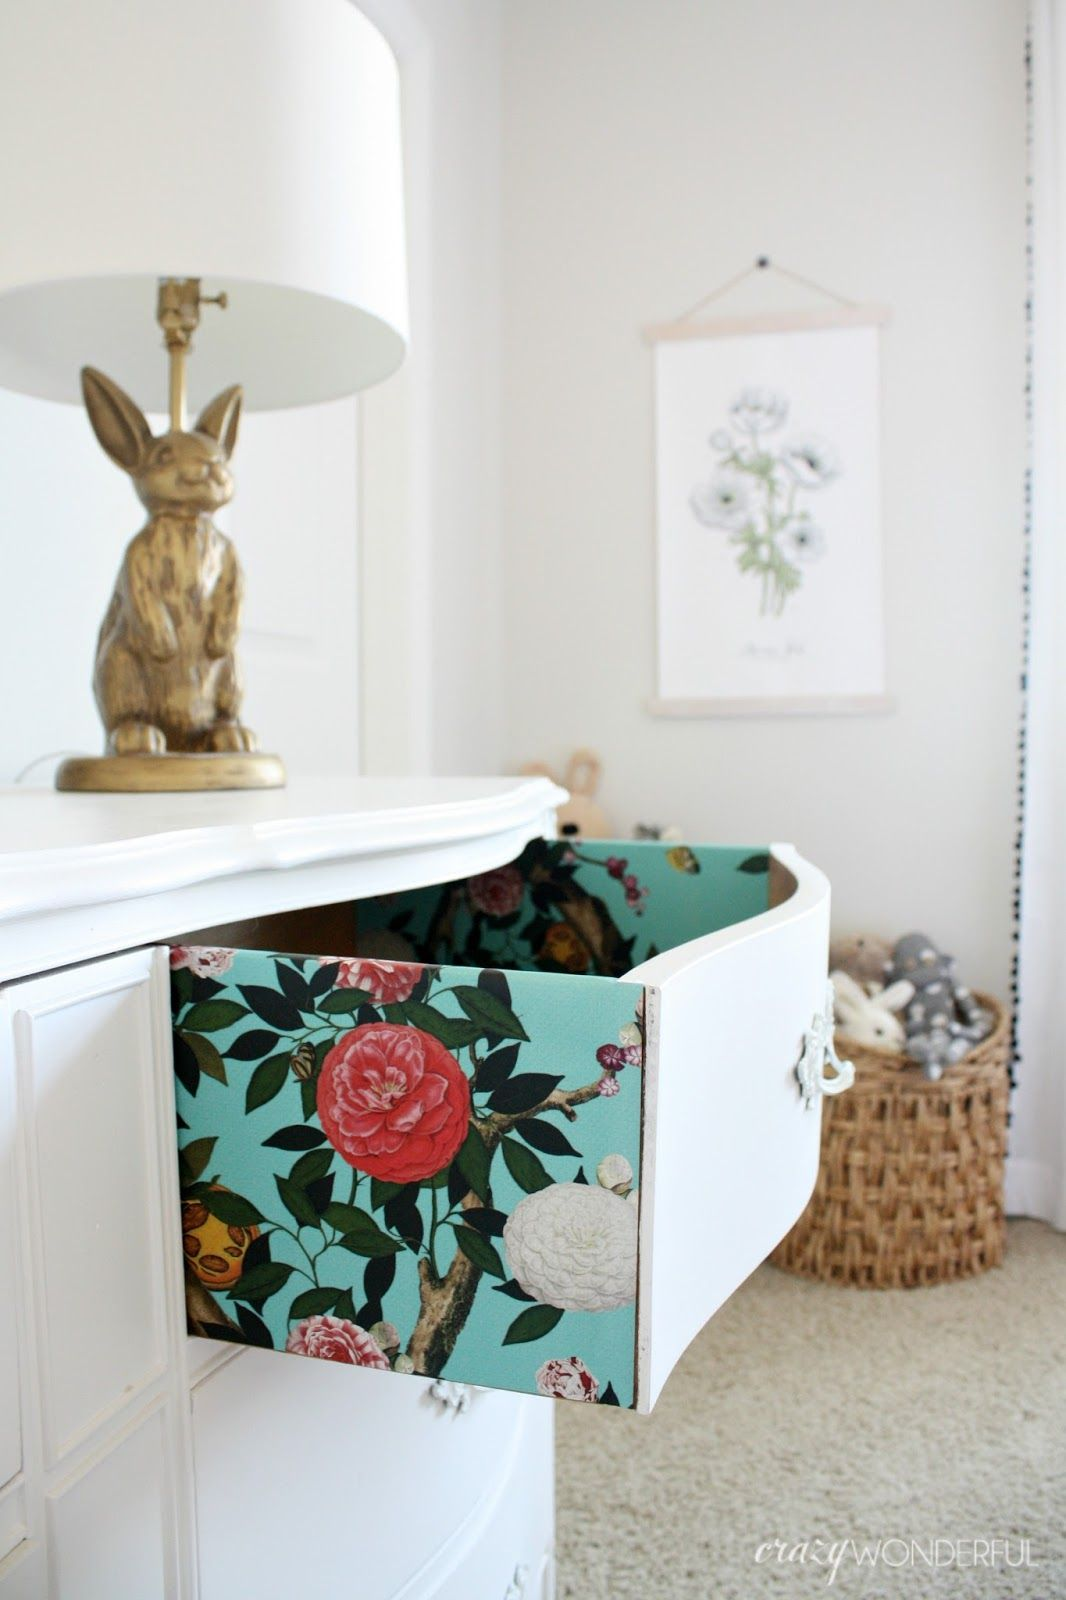 My Initial Shock Of Wallpaper S Return Was Laid Aside A Couple Of Years Ago When I Realized It S Not At All Wallpaper Dresser Dresser Drawers Wallpaper Drawers